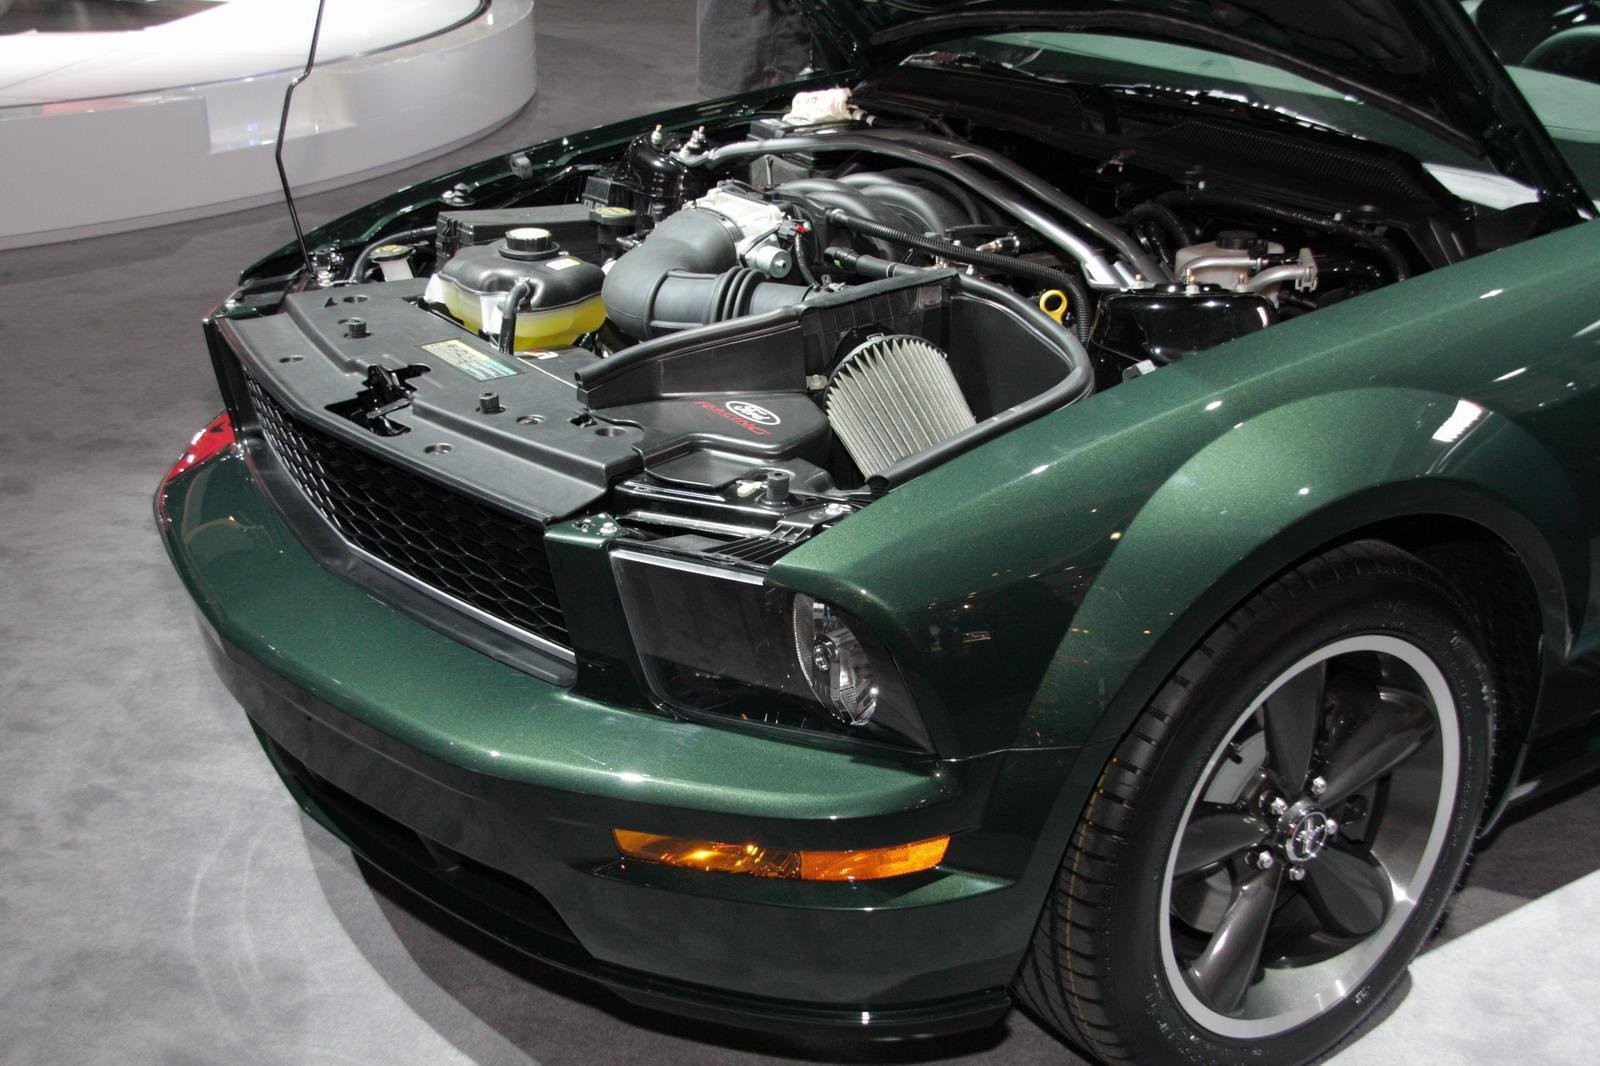 2008 ford mustang bullitt picture 215039 car review top speed. Black Bedroom Furniture Sets. Home Design Ideas